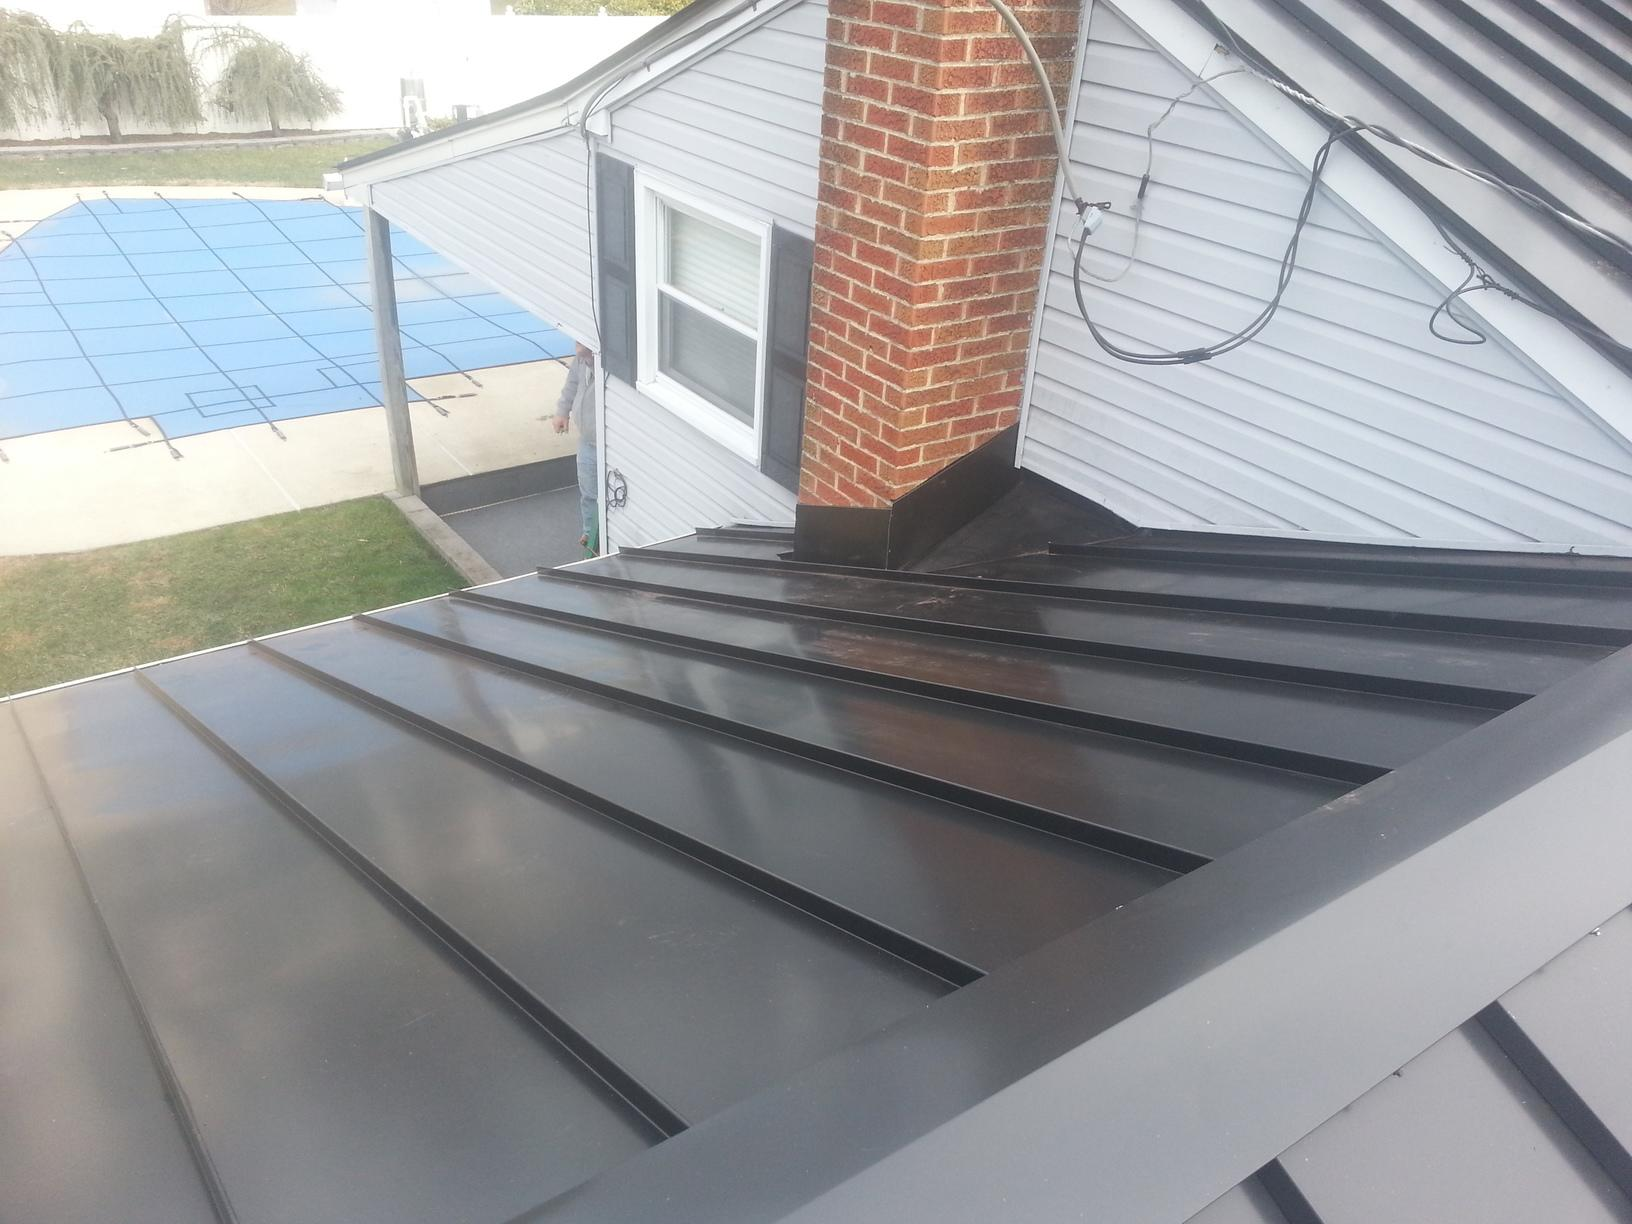 Matte Black Standing Seam Metal Roof with Custom Chimney Flashing Installed in Haddon Heights, NJ